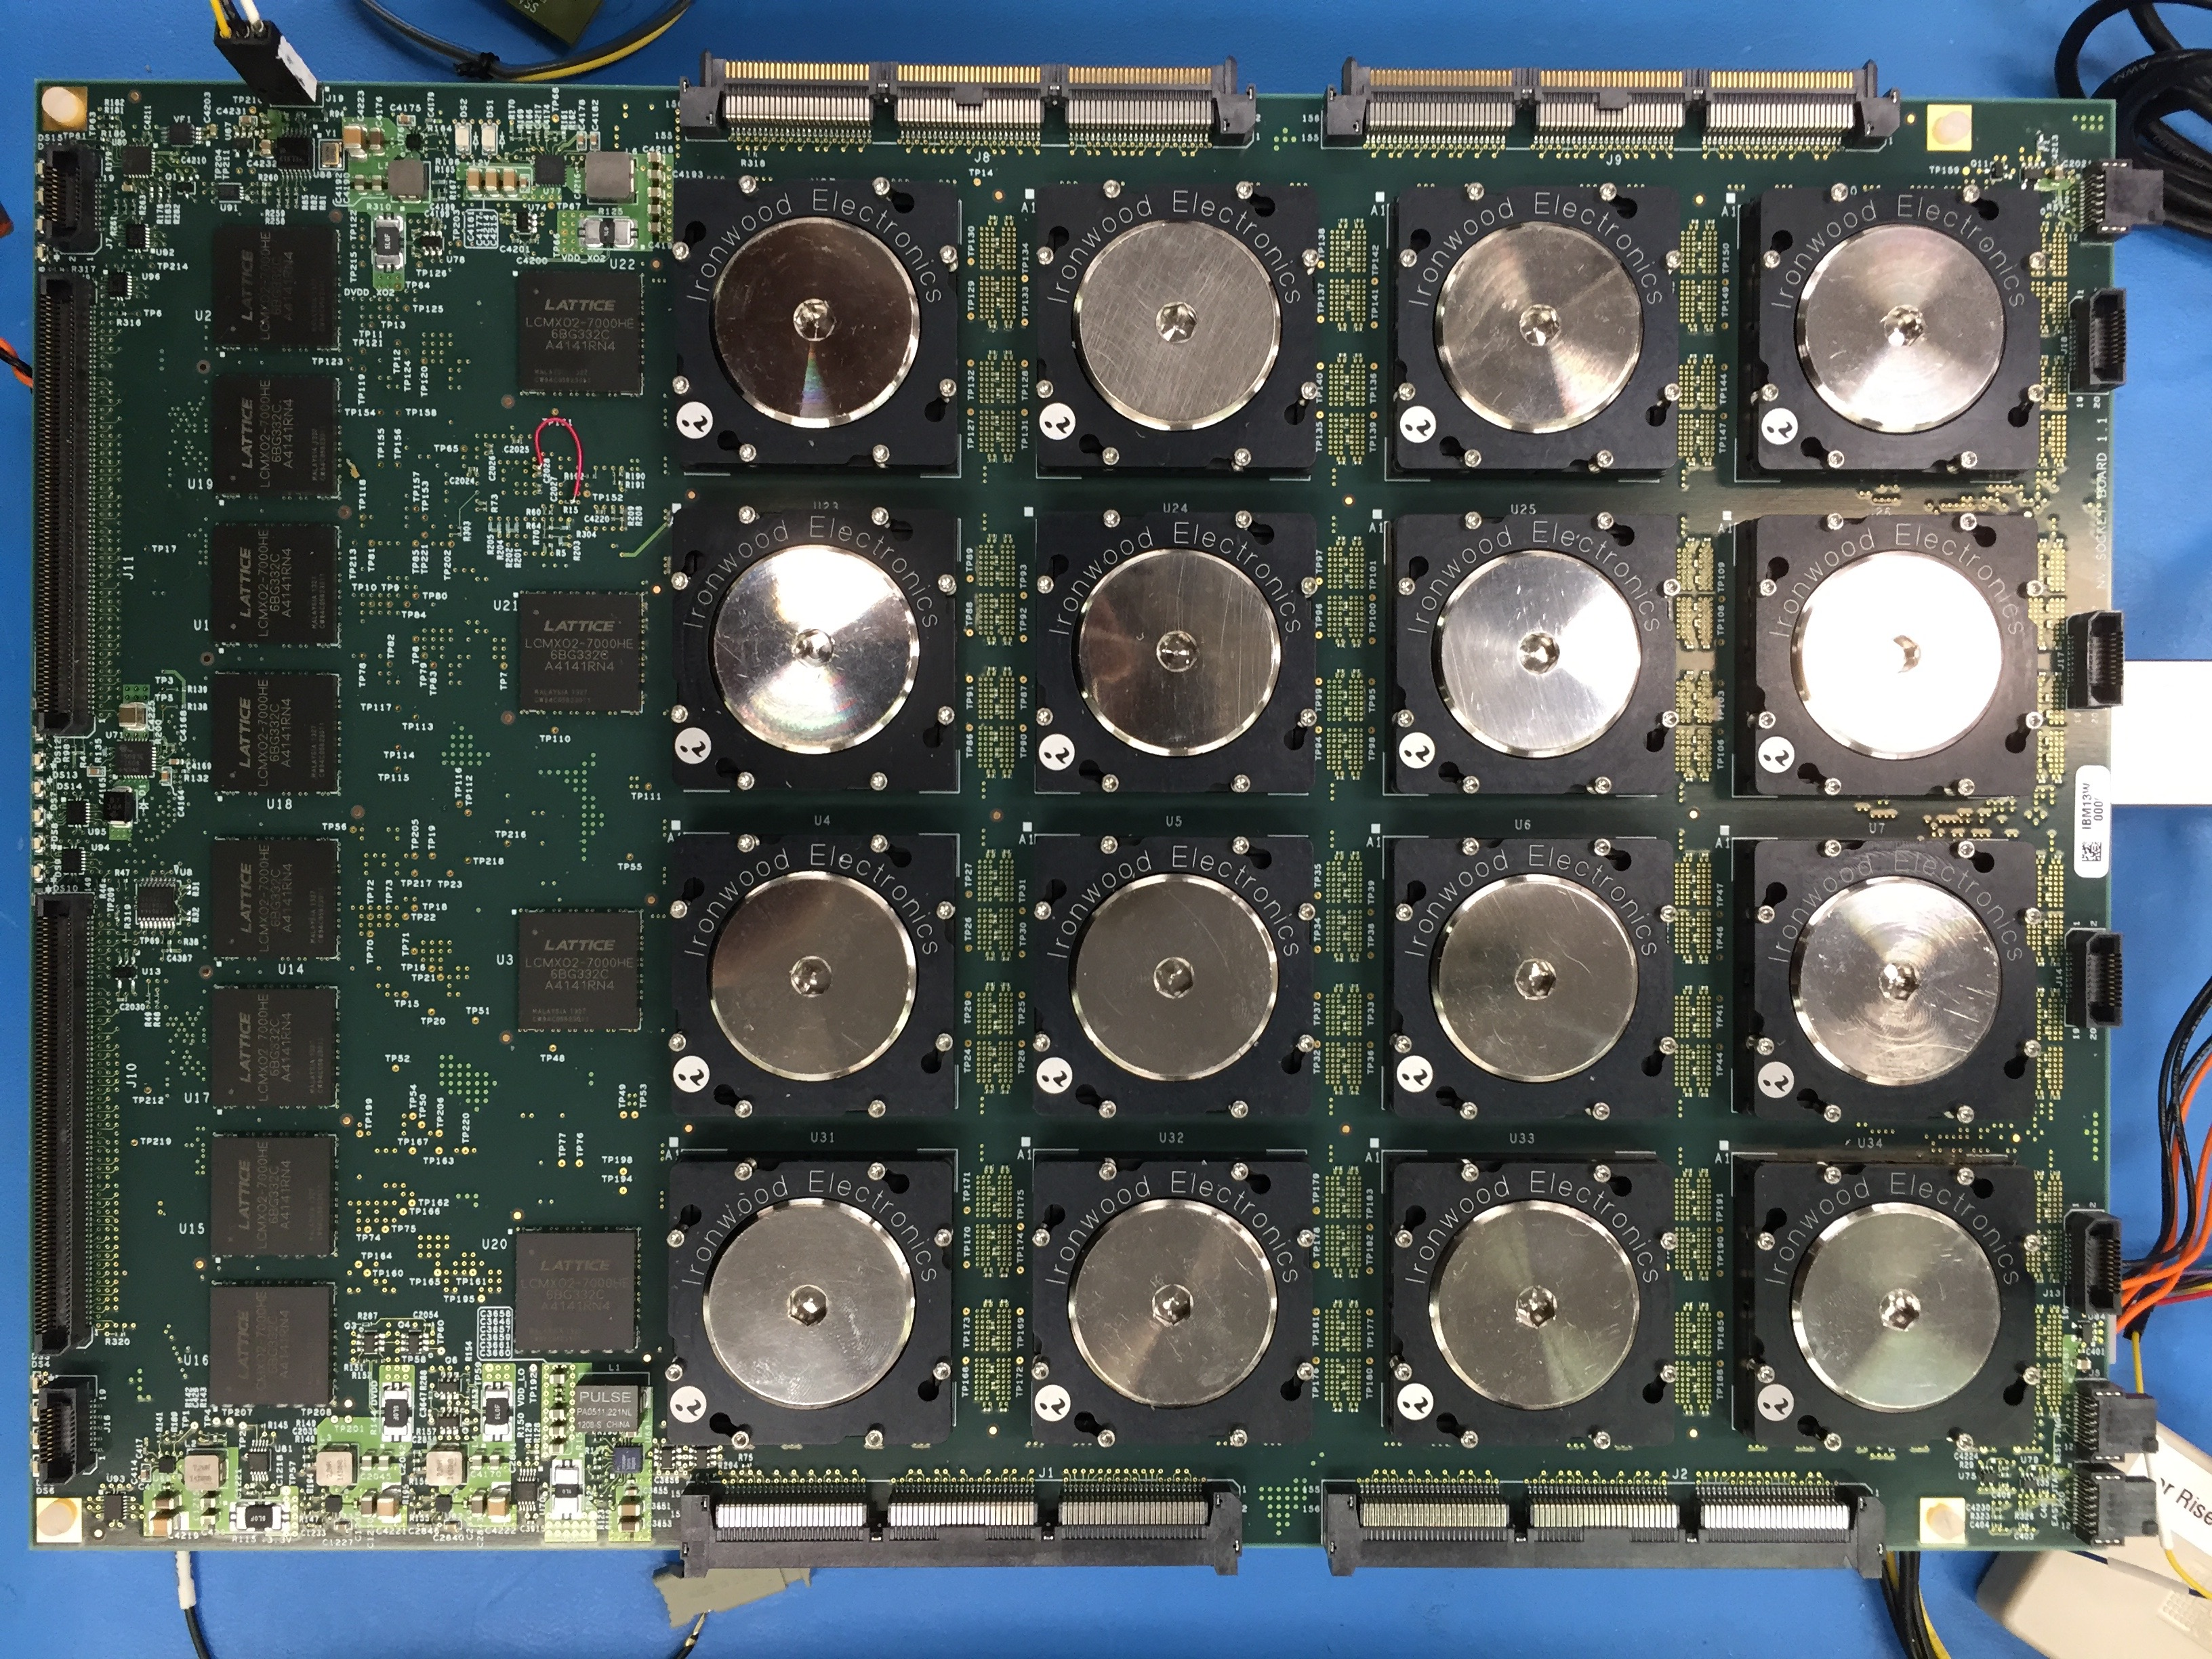 NS16e: System populated with TN-chips using sockets